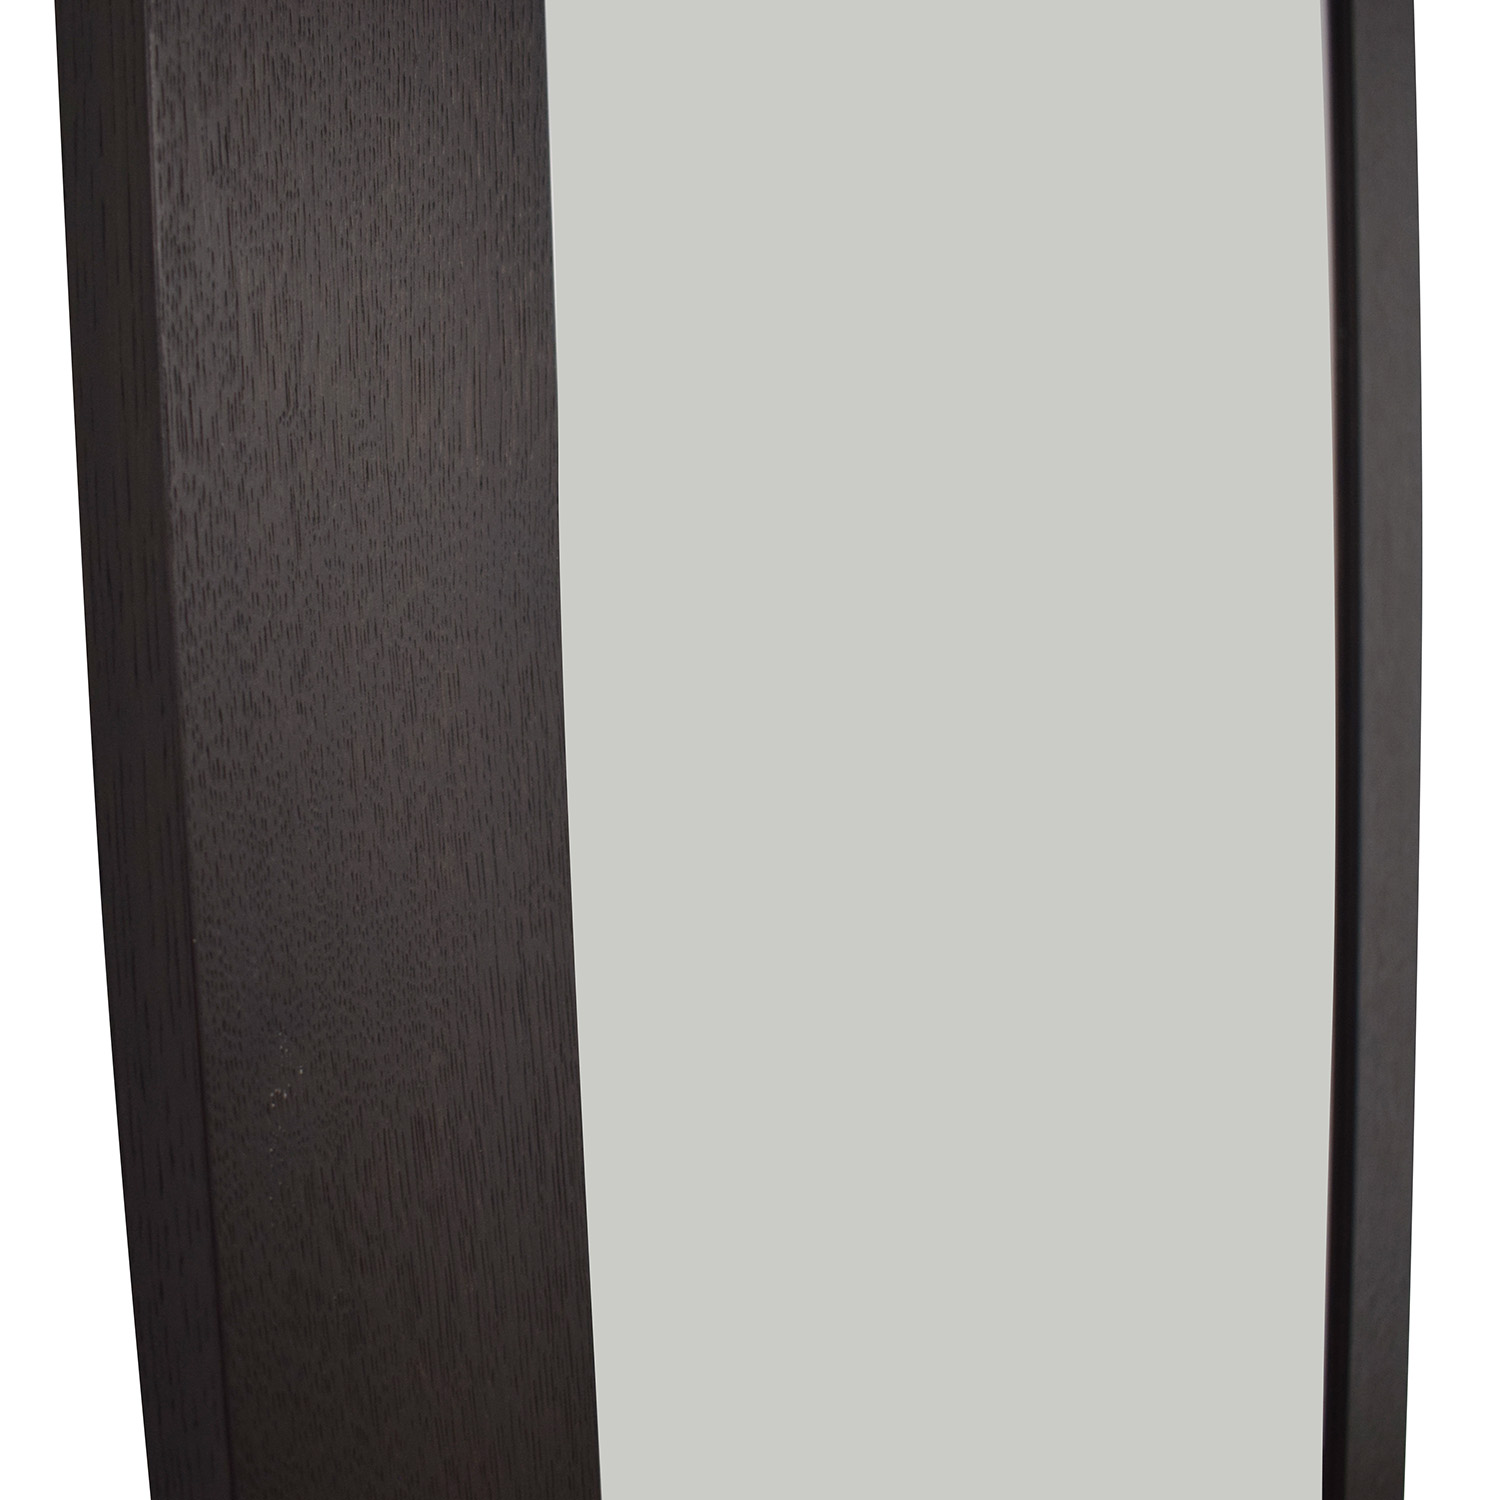 DDC HK Mirror with Wood Frame / Mirrors